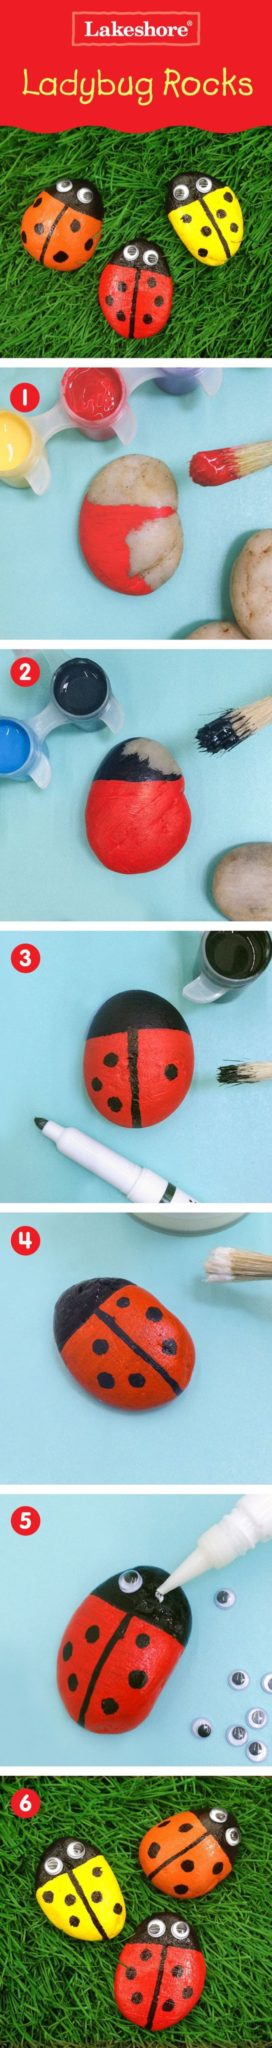 pebble painting ideas17